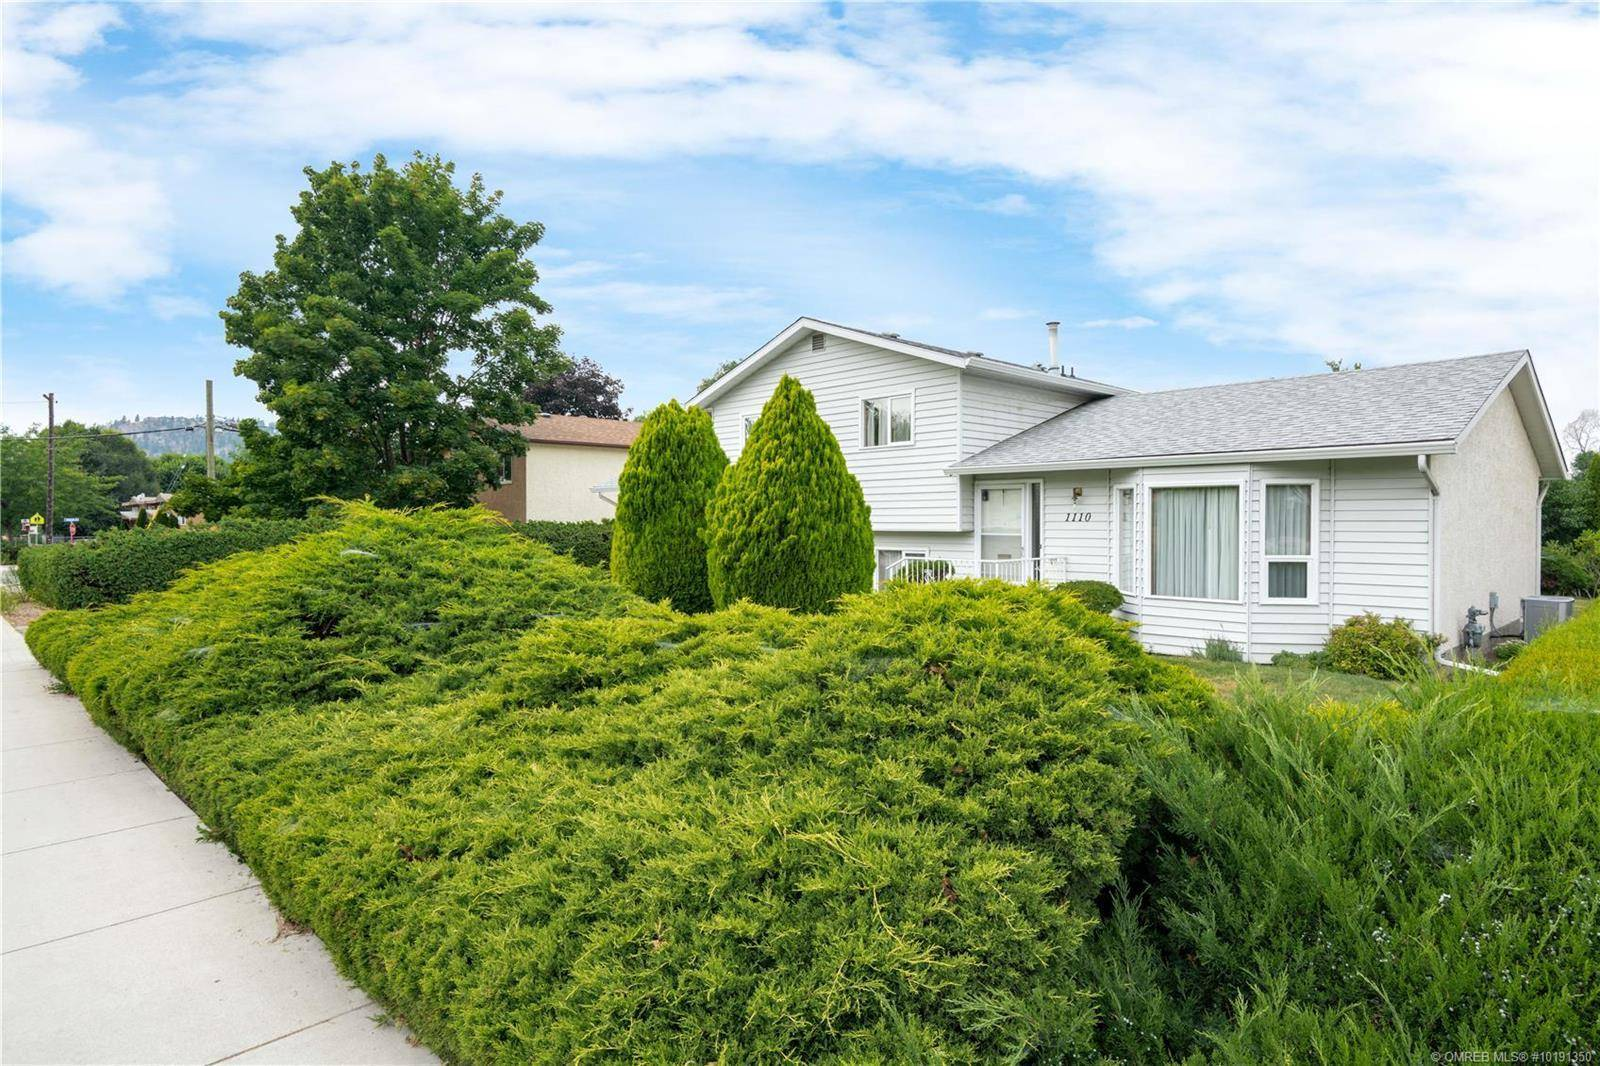 House for sale at 1110 Houghton Rd Kelowna British Columbia - MLS: 10191350